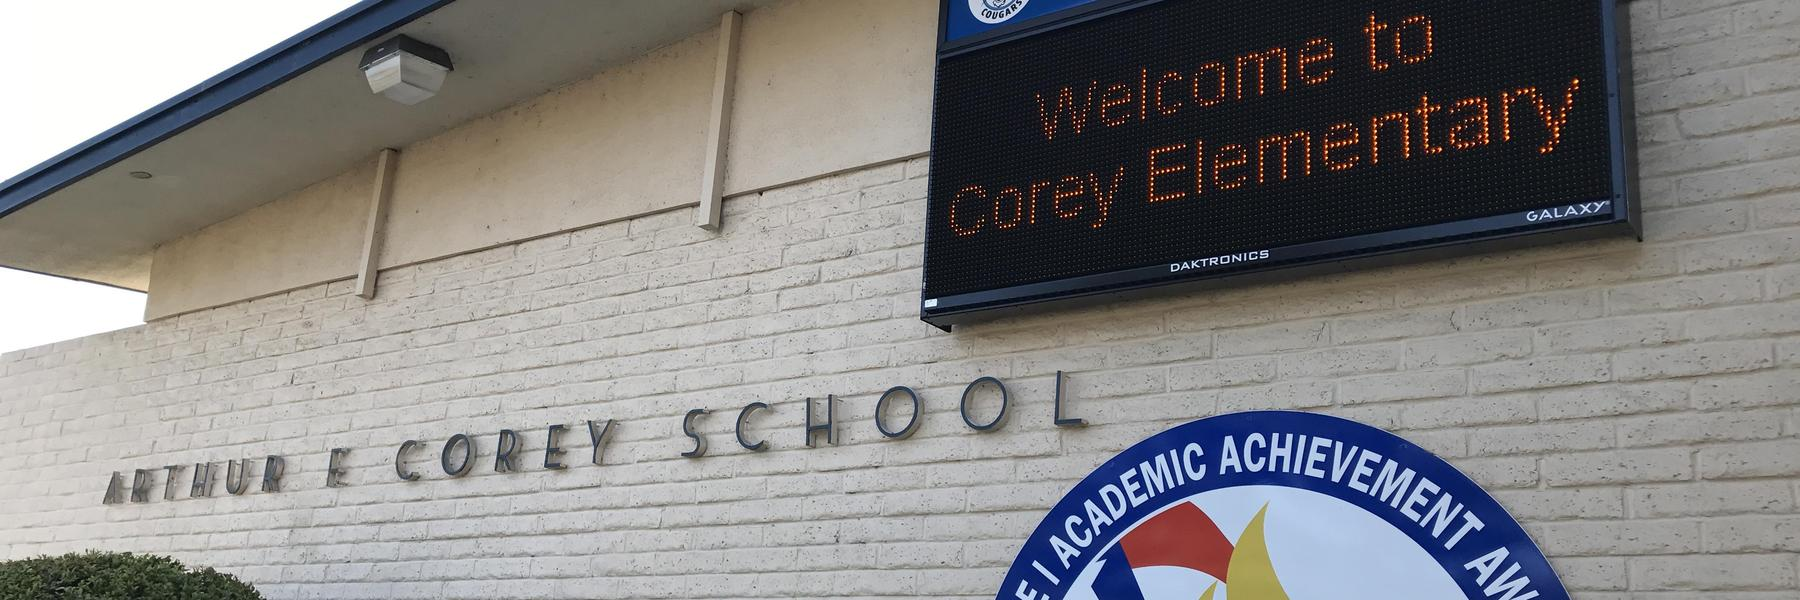 Corey School is a safe community where all students are challenged to achieve their highest potential: academically, artistically, and socially while embracing diversity and developing strength of character.